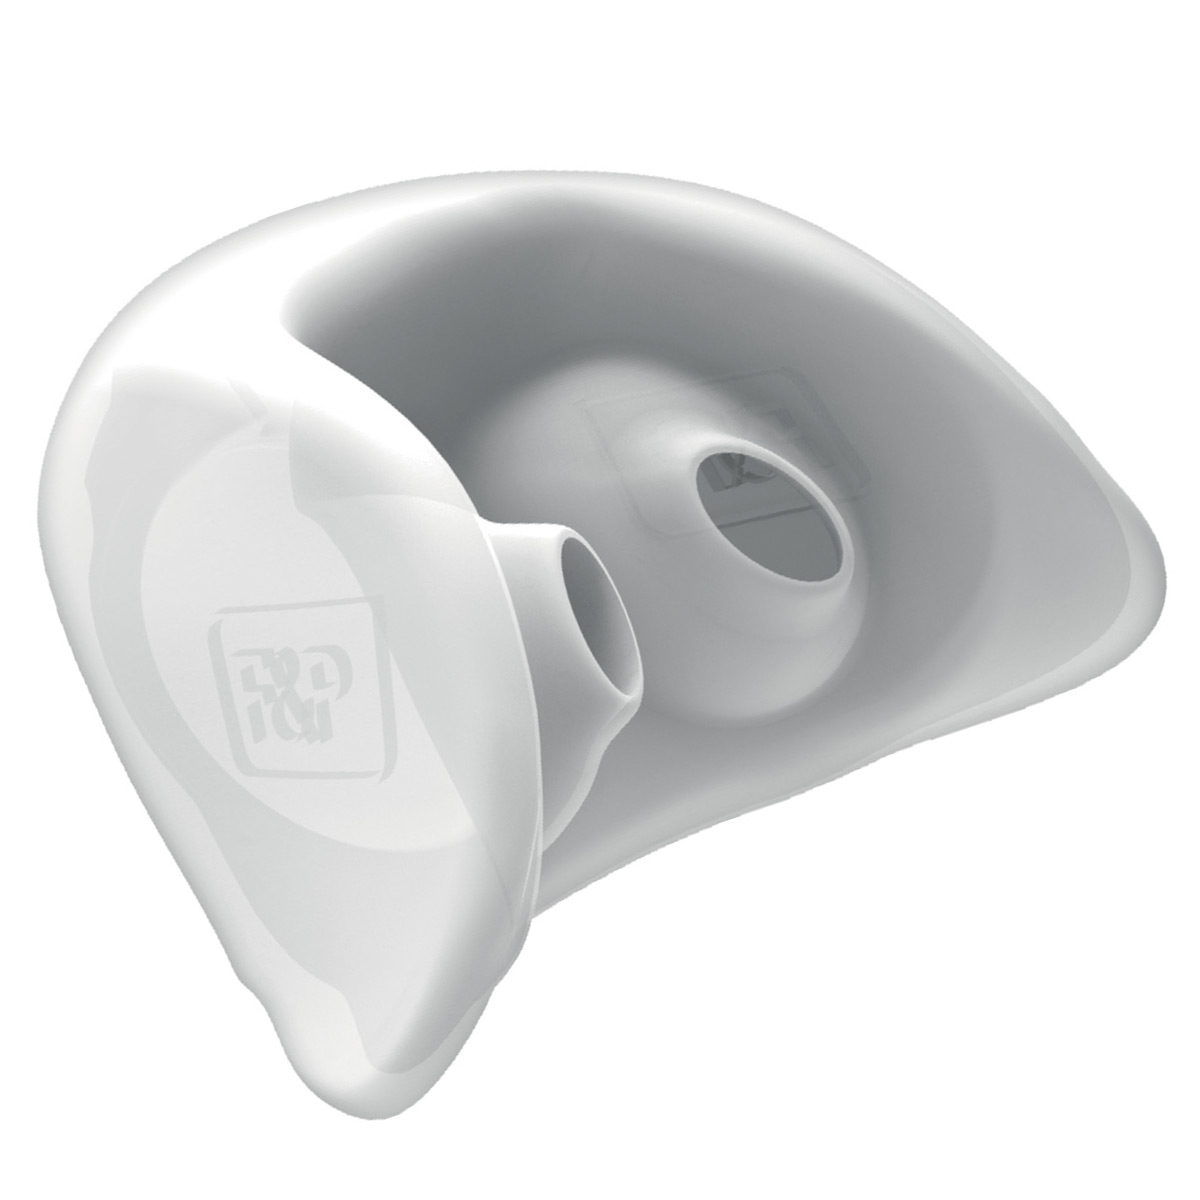 Direct Home Medical: AirPillow Seal (Nasal Pillow) for F&P ...